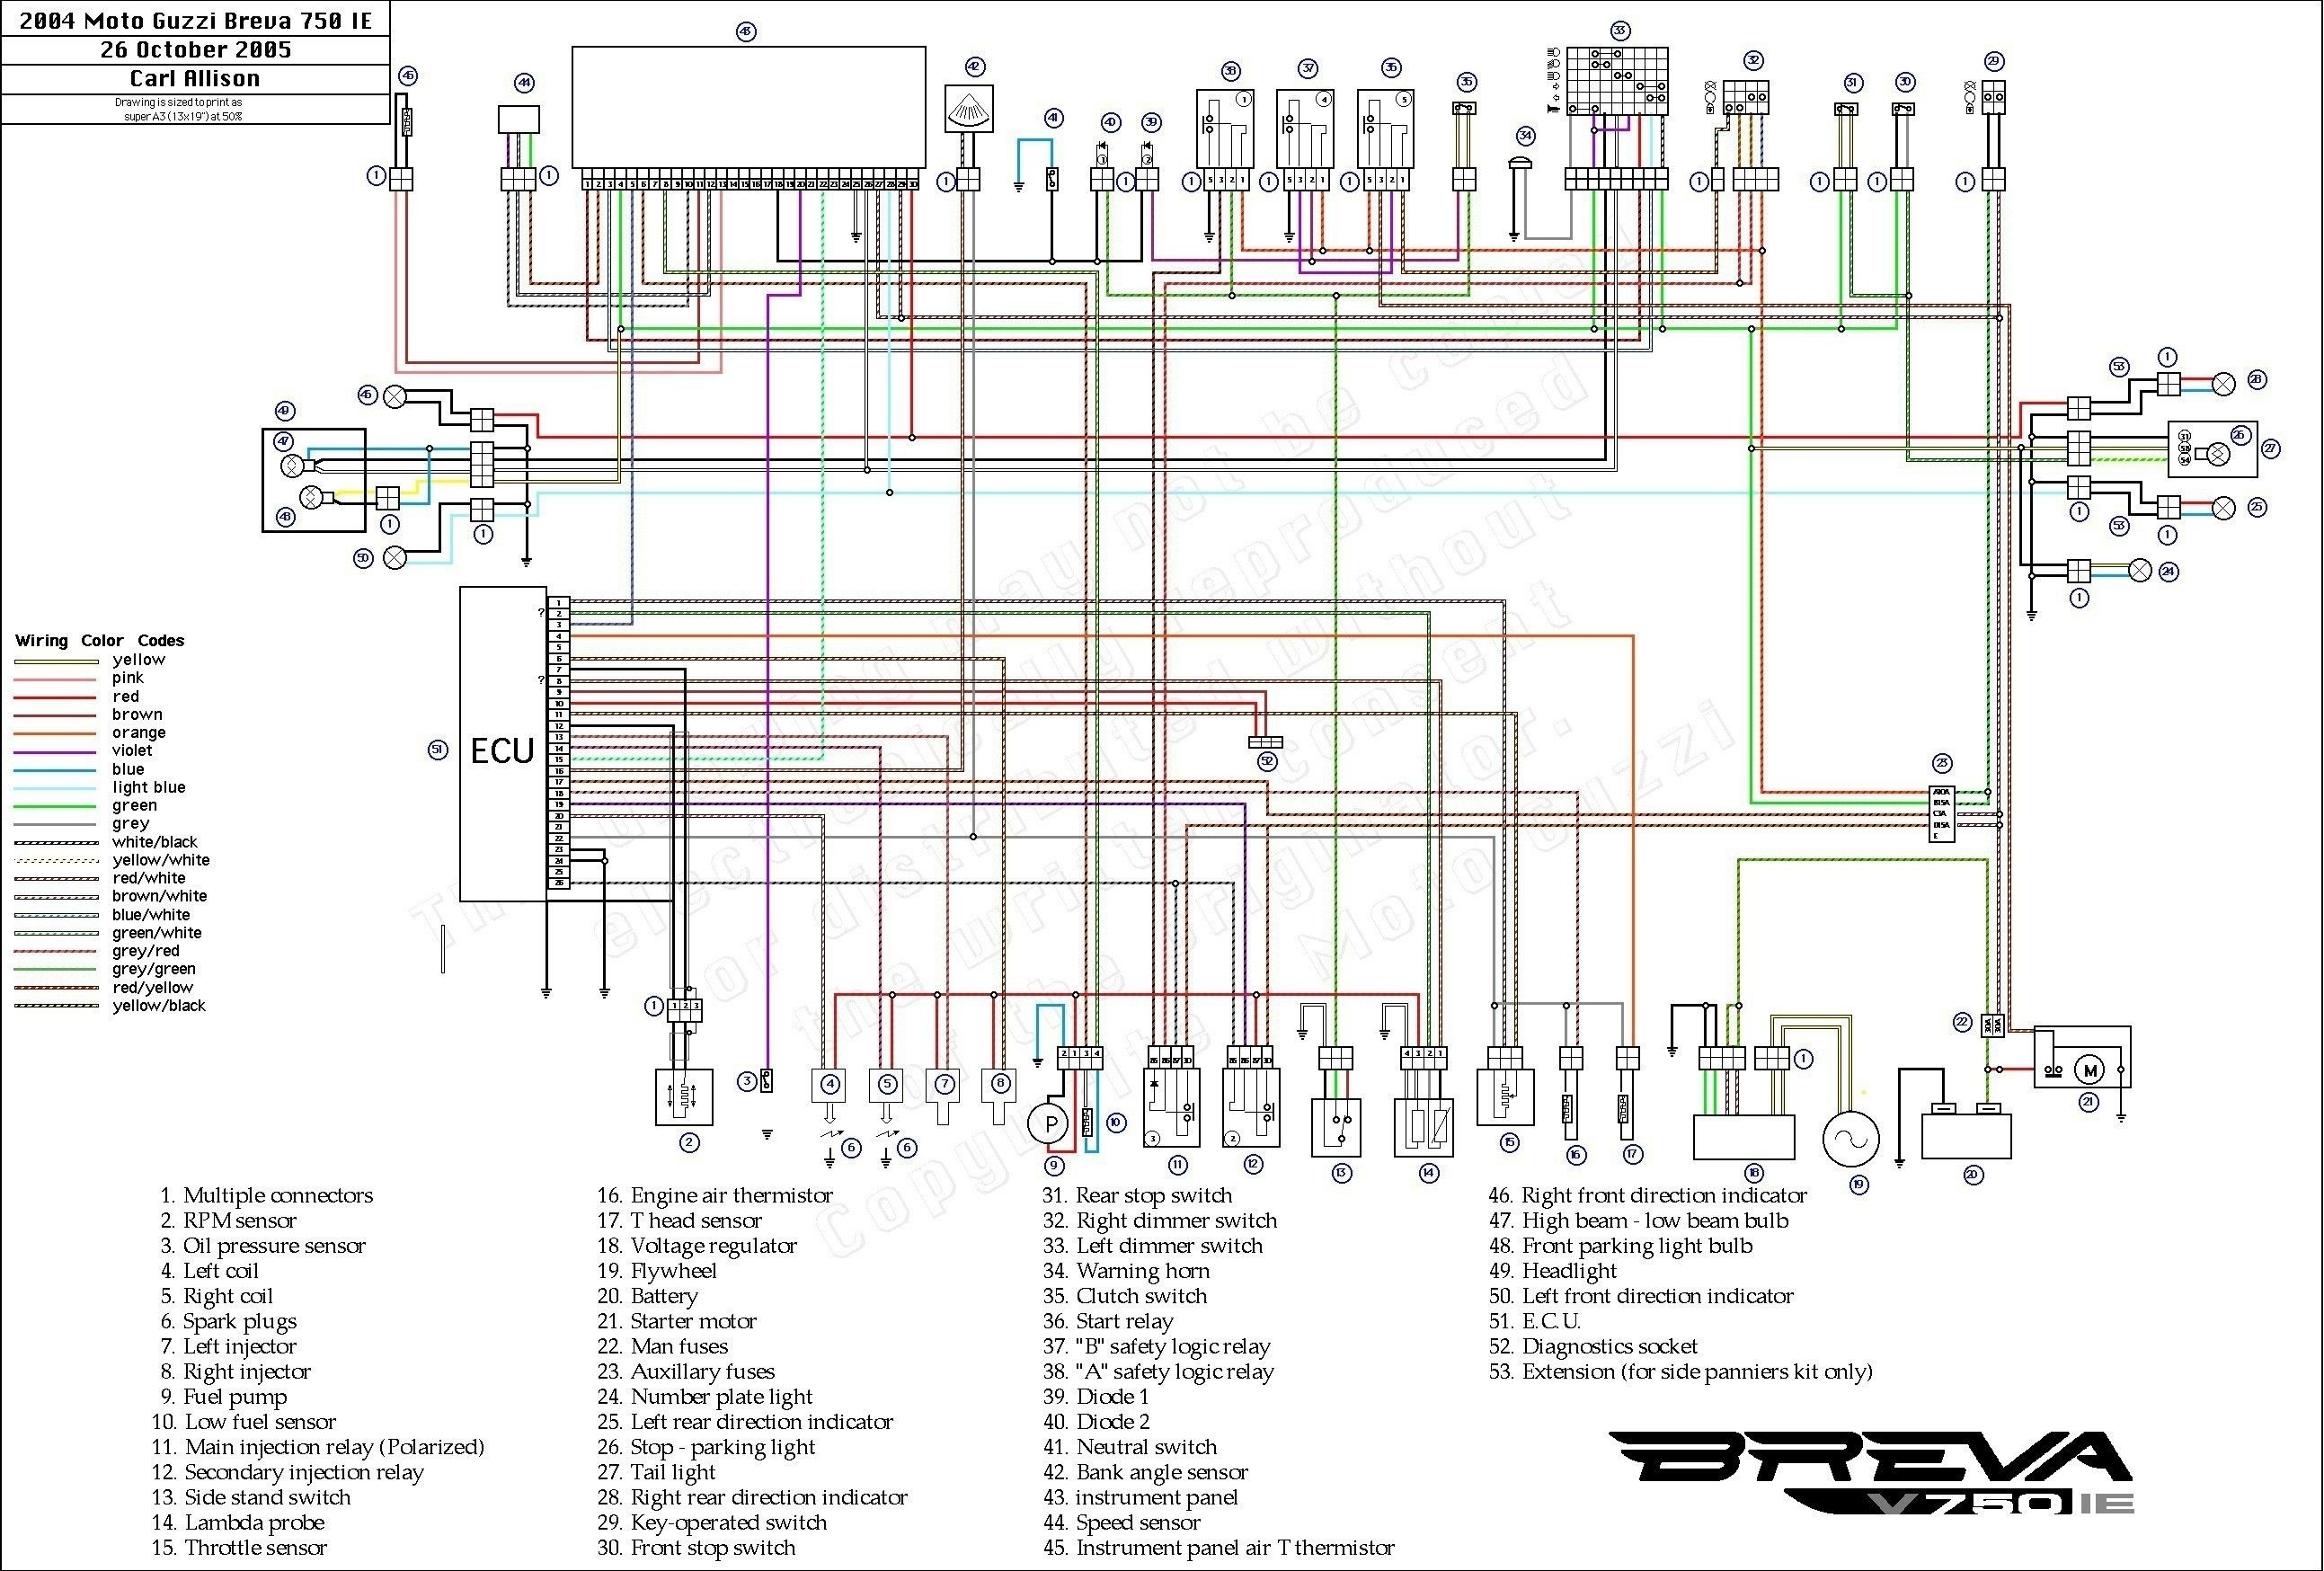 Wiring Diagram For 2005 Dodge Ram from i.pinimg.com